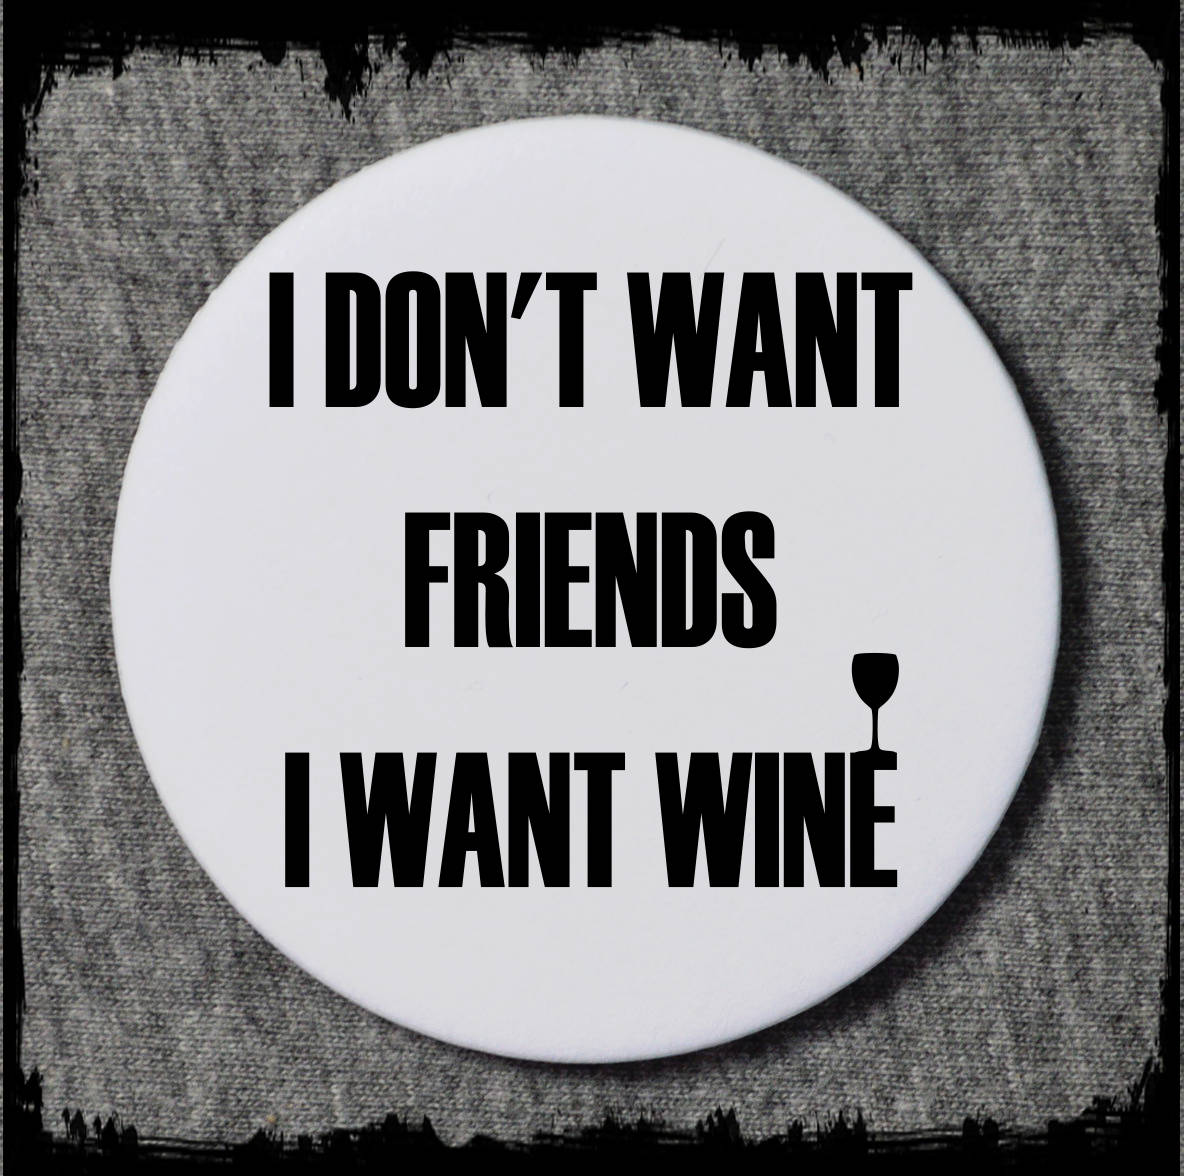 I don't want friends I want wine badge - funny badge - funny badges